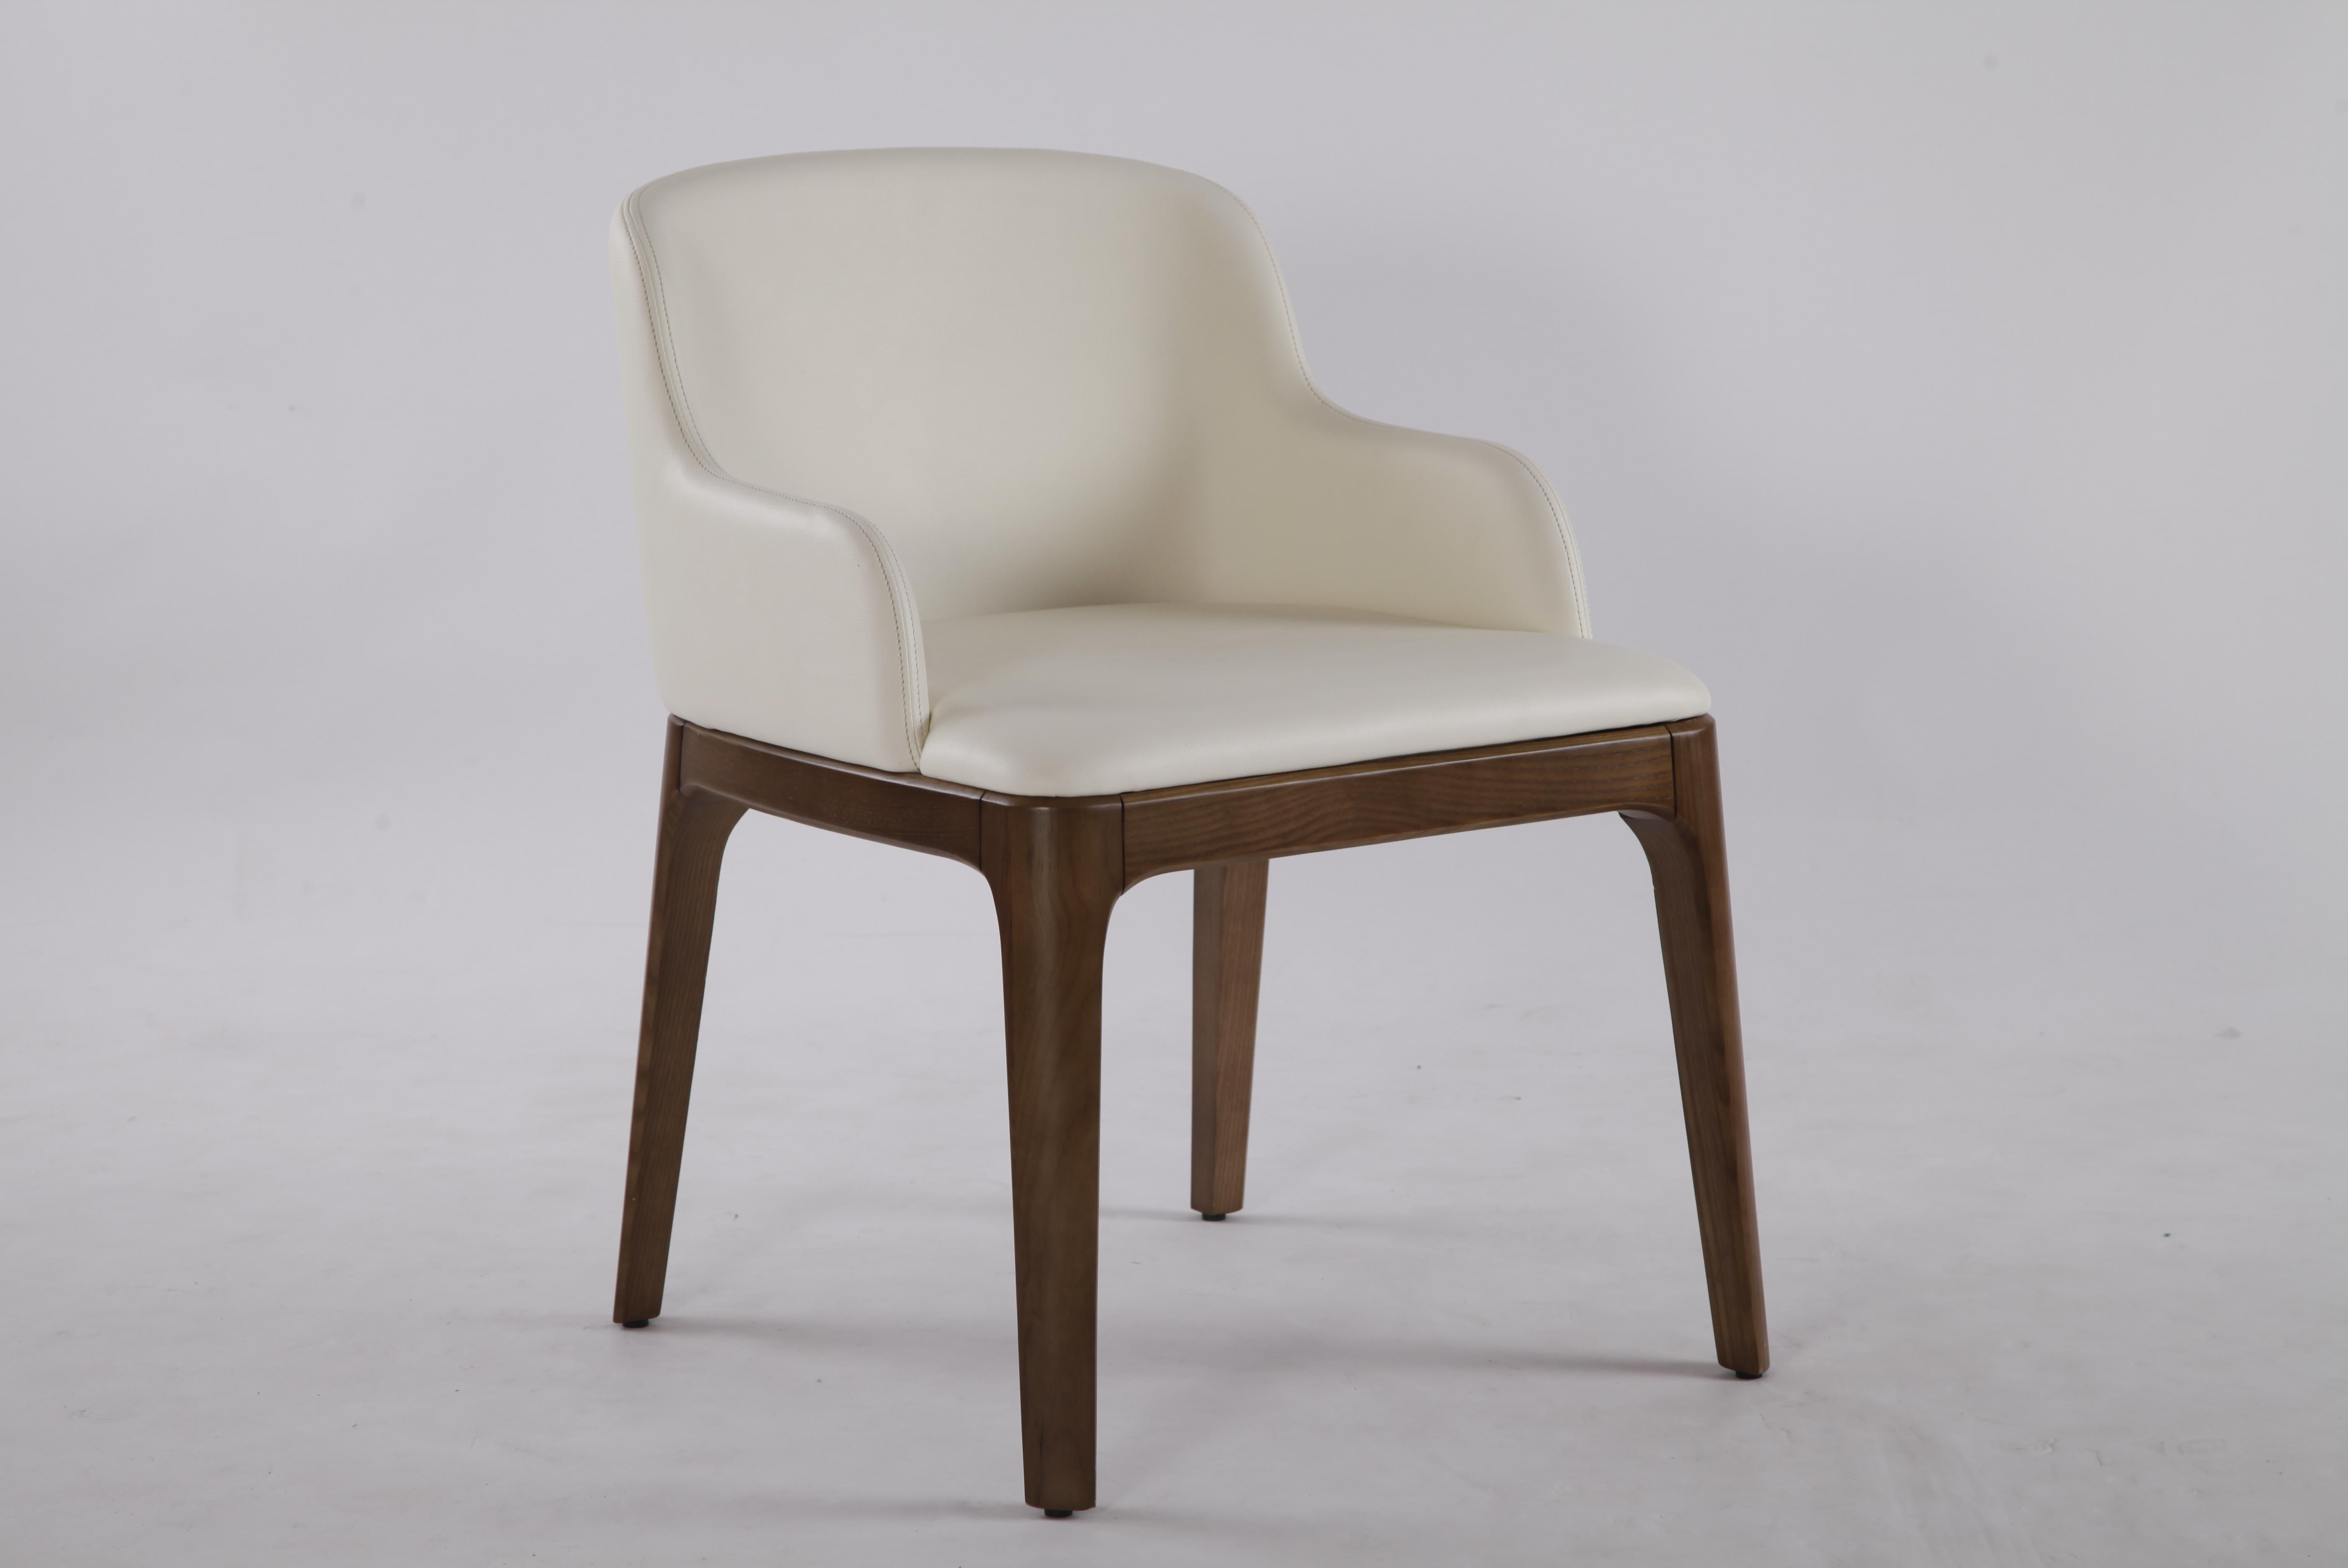 Poliform grace chair replica